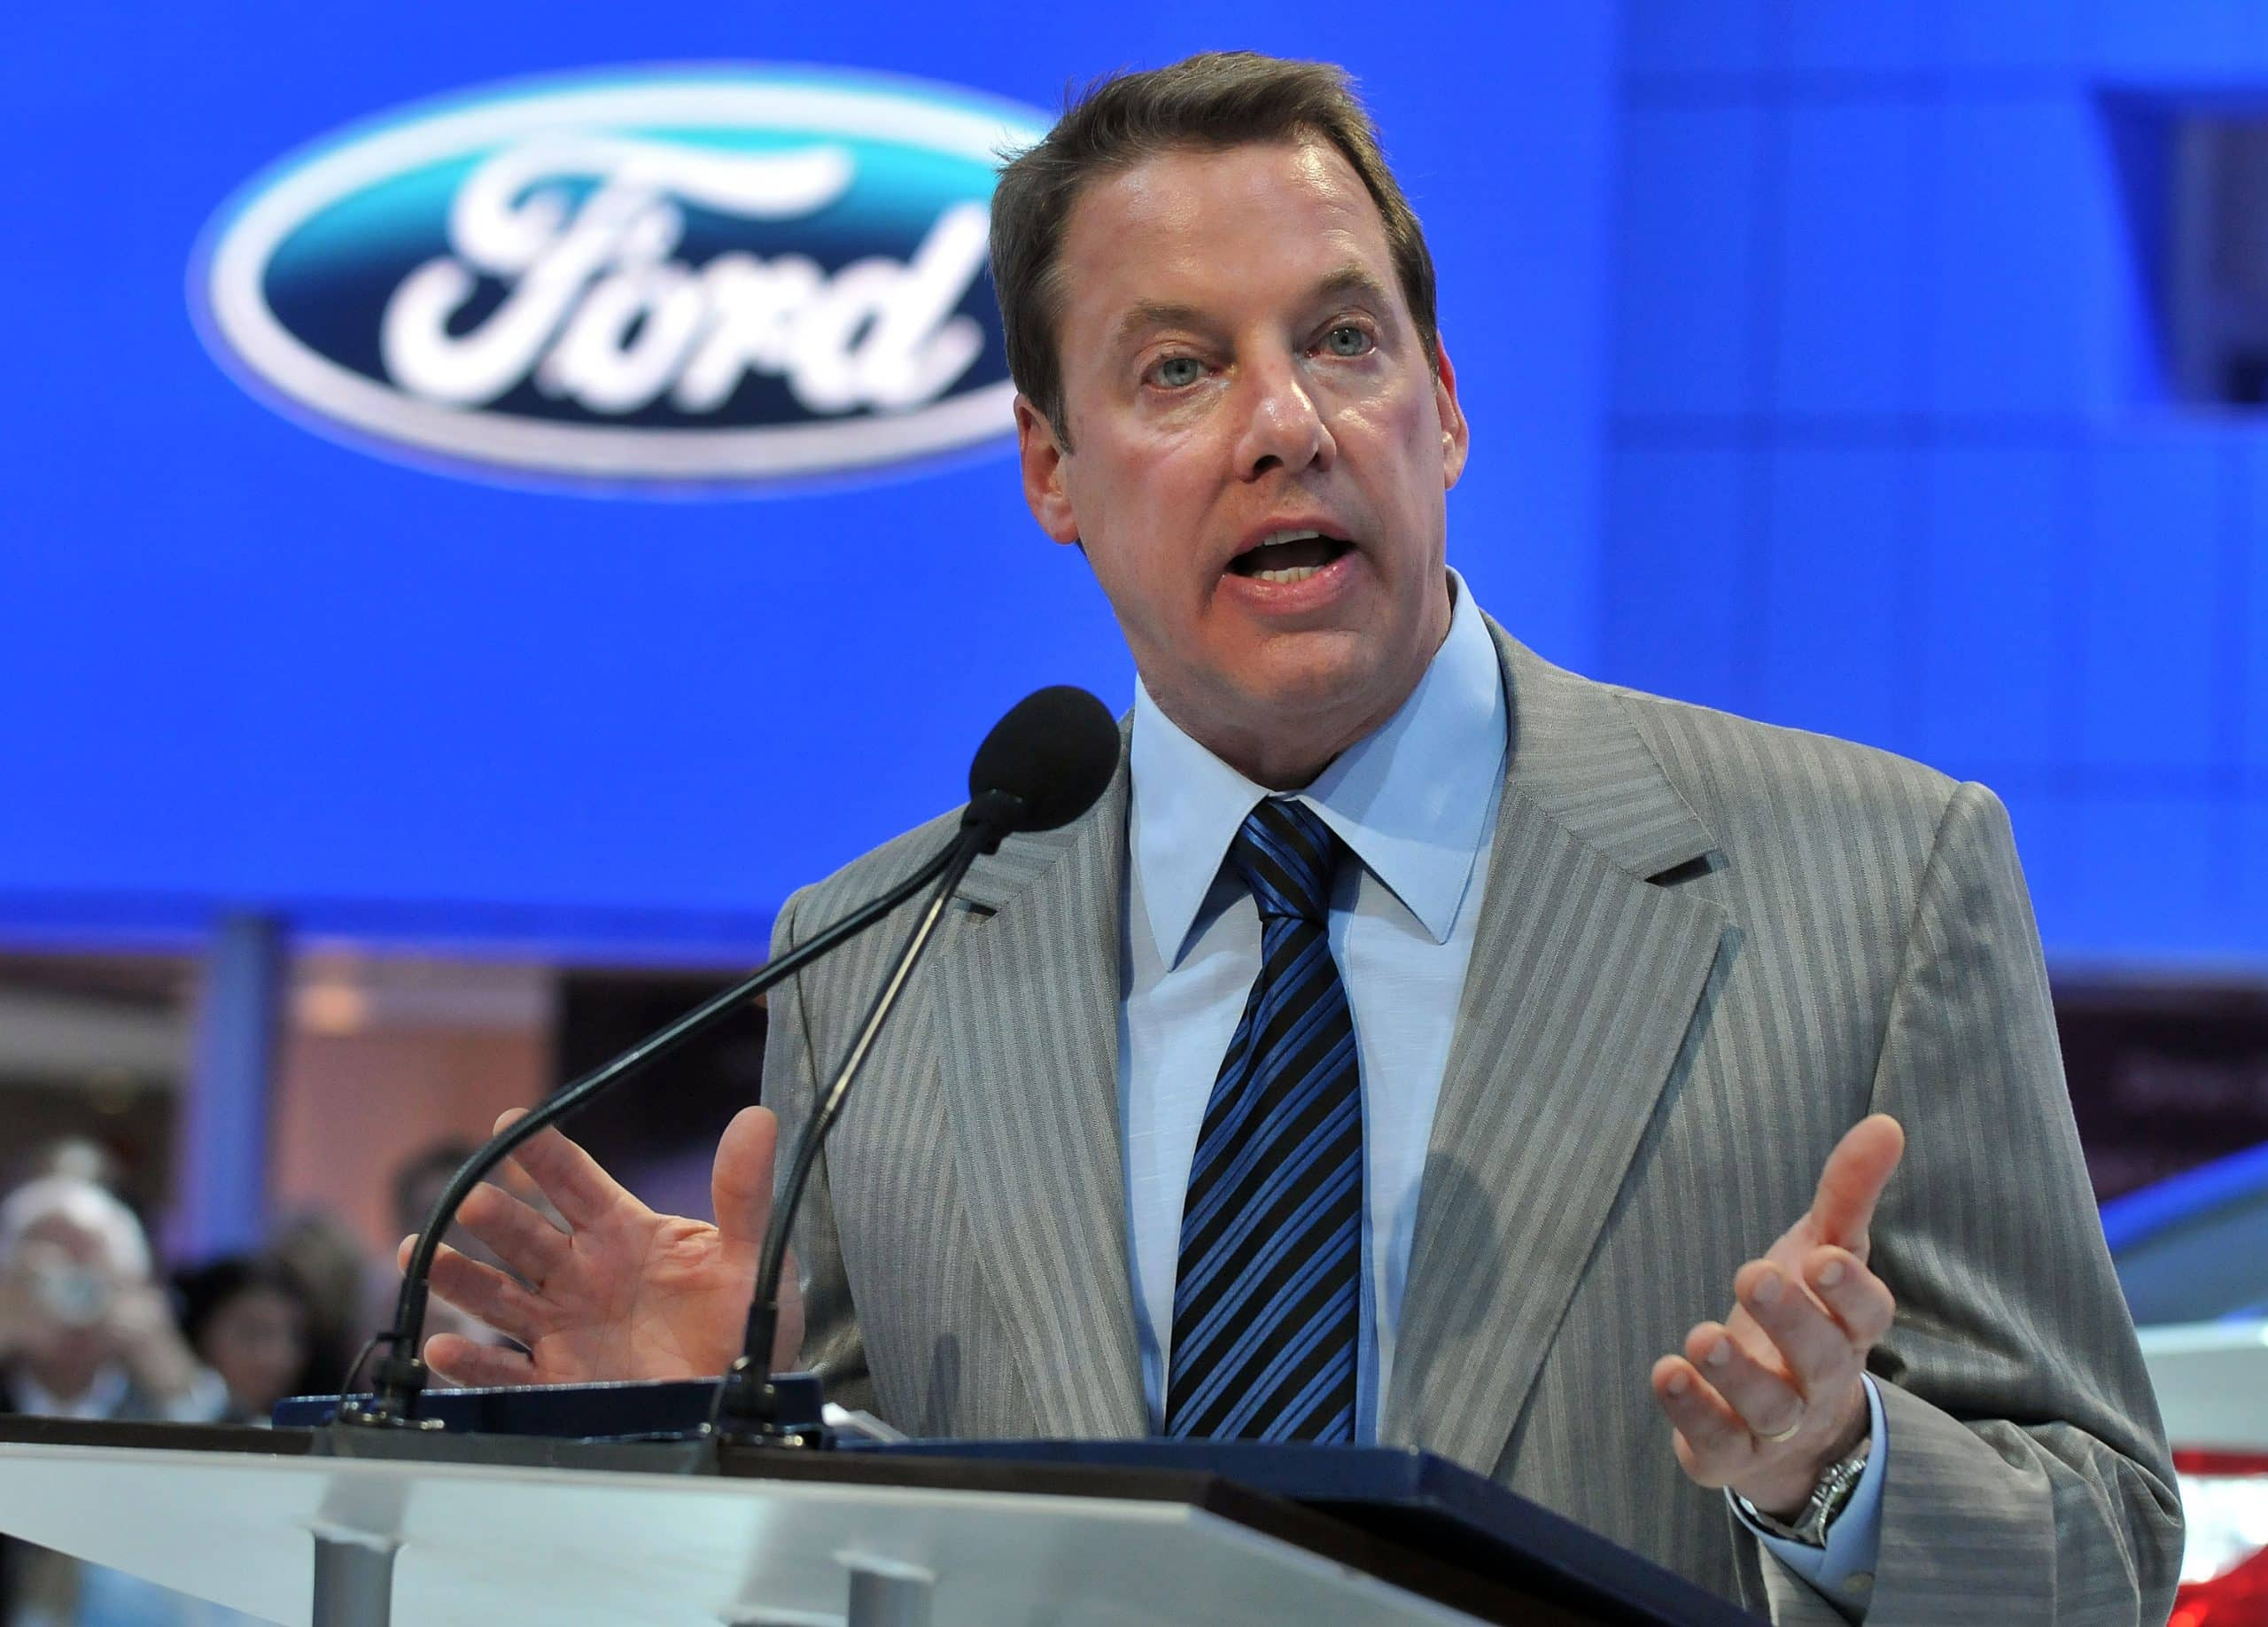 William Clay Ford Jr scaled 10 cosas que no sabías sobre William Clay Ford Jr.